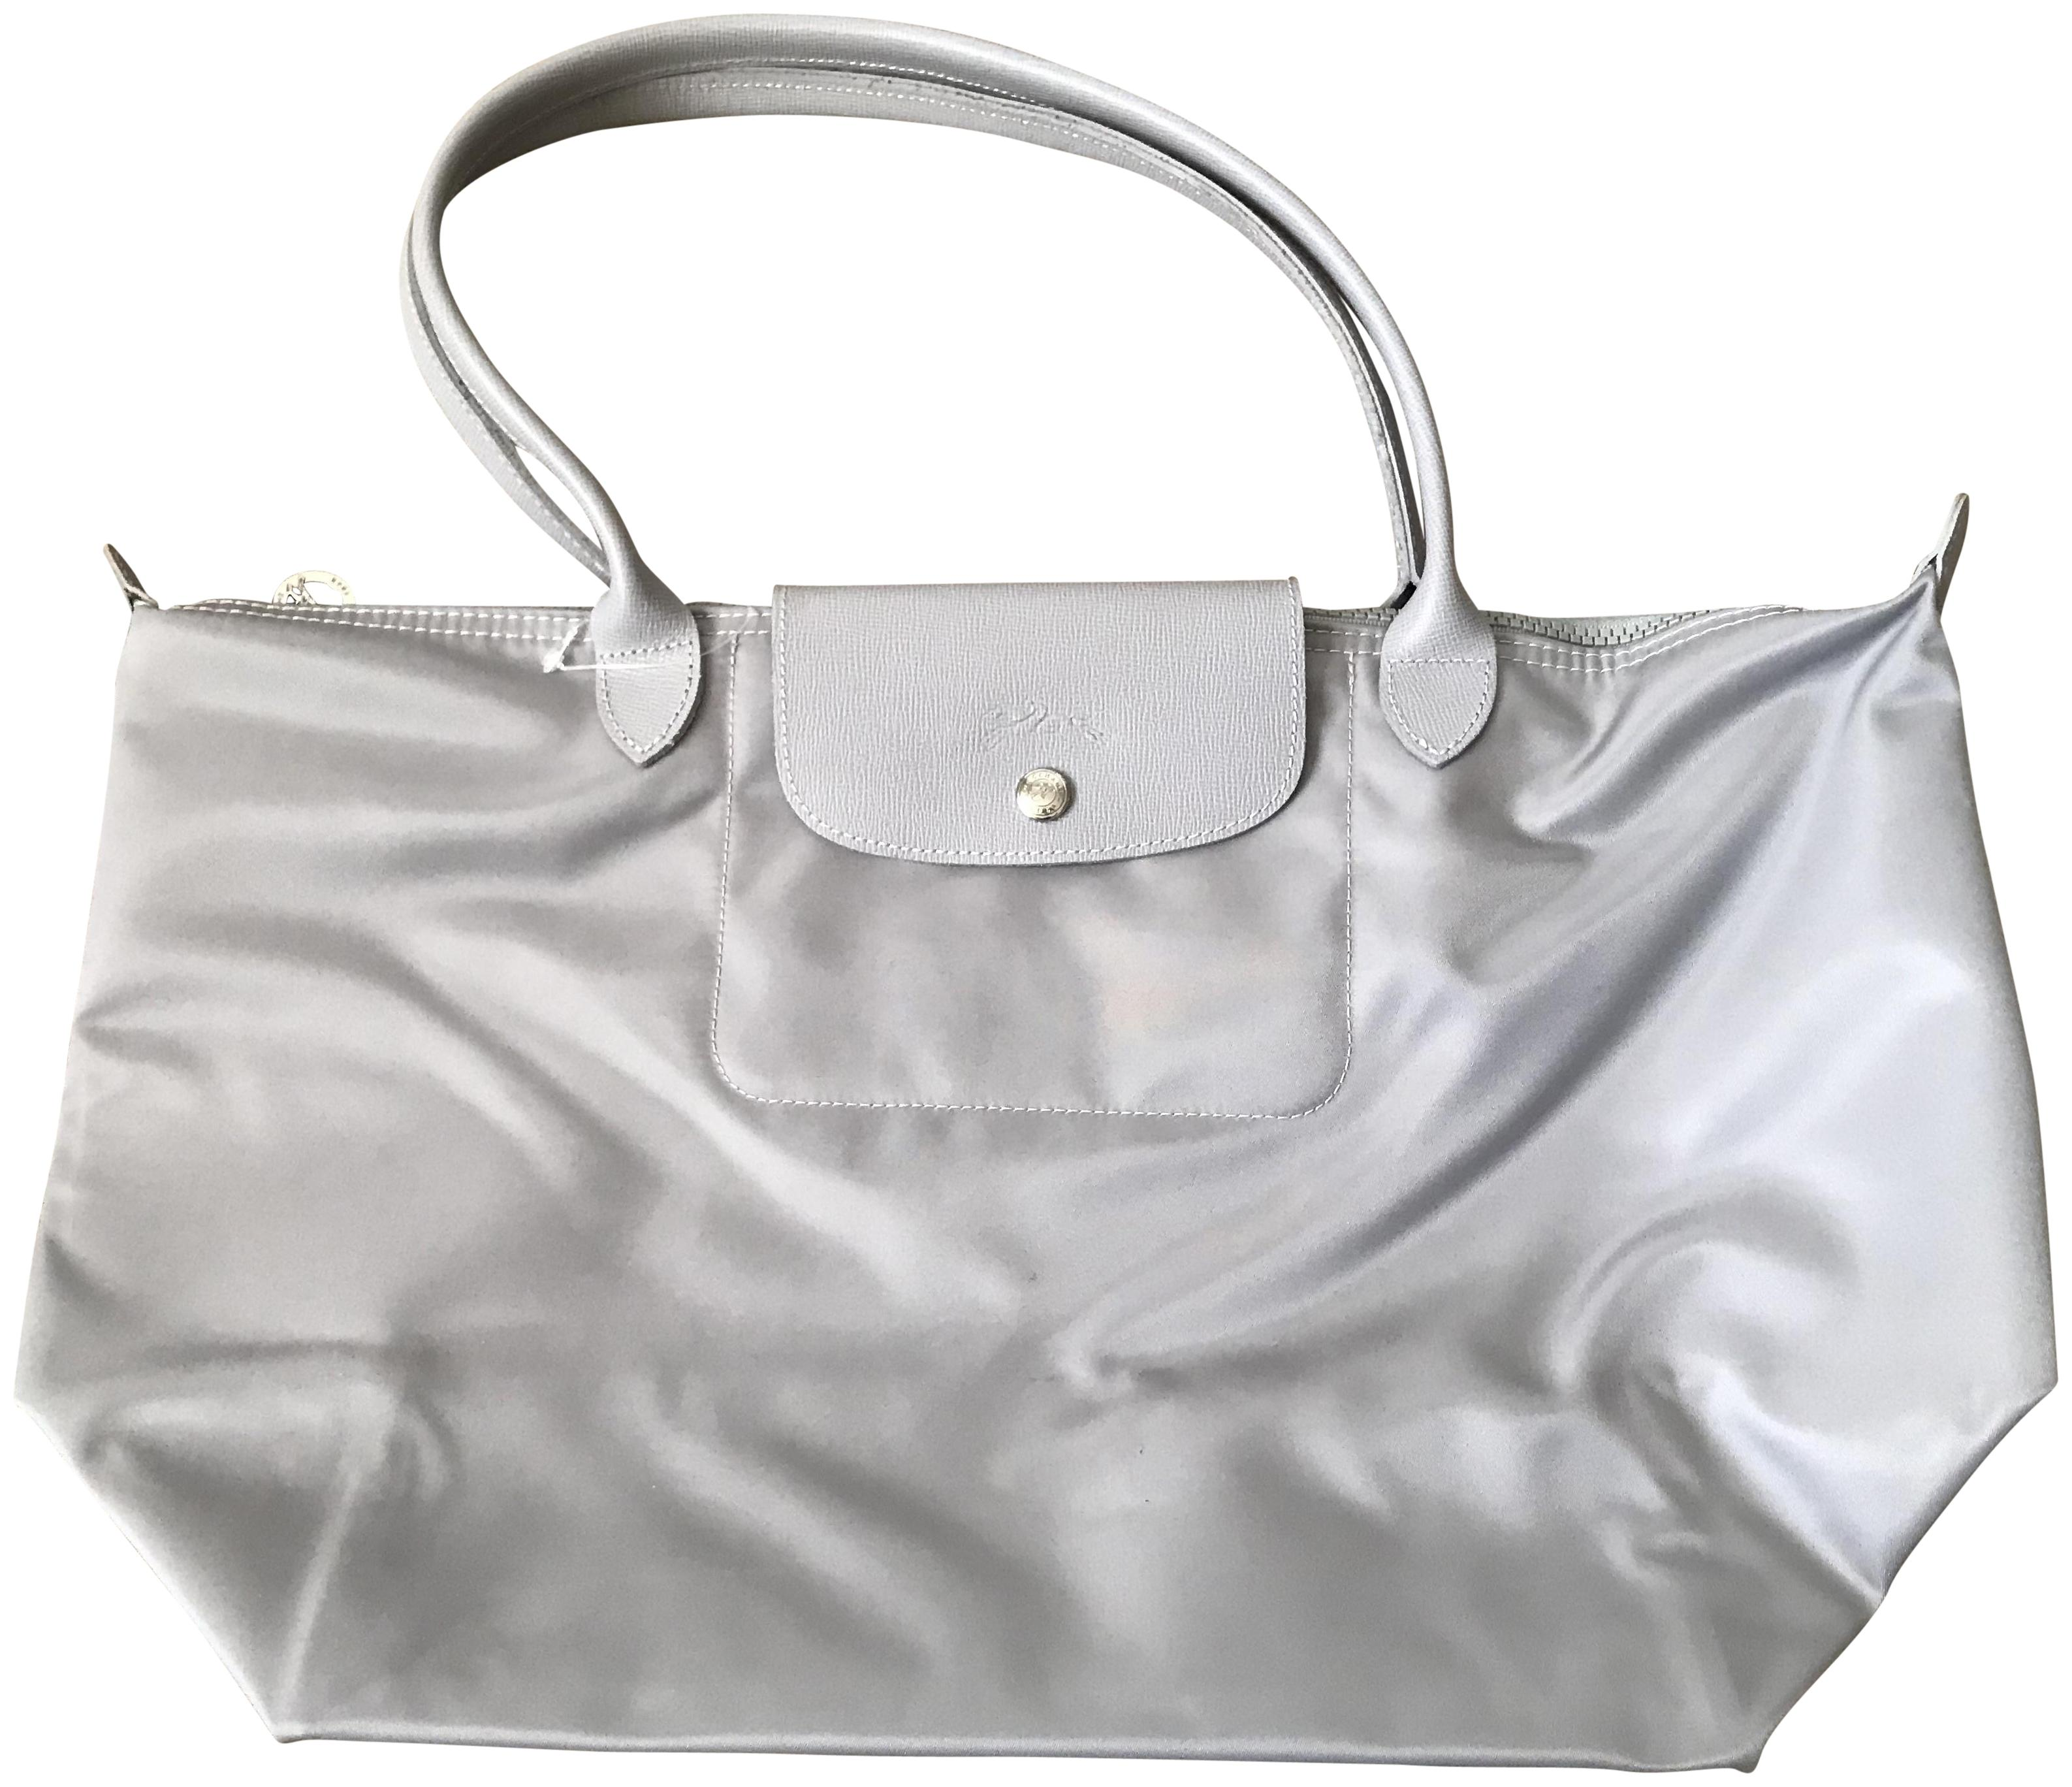 Longchamp Lepliage Neo Tote in light grey/silver ...